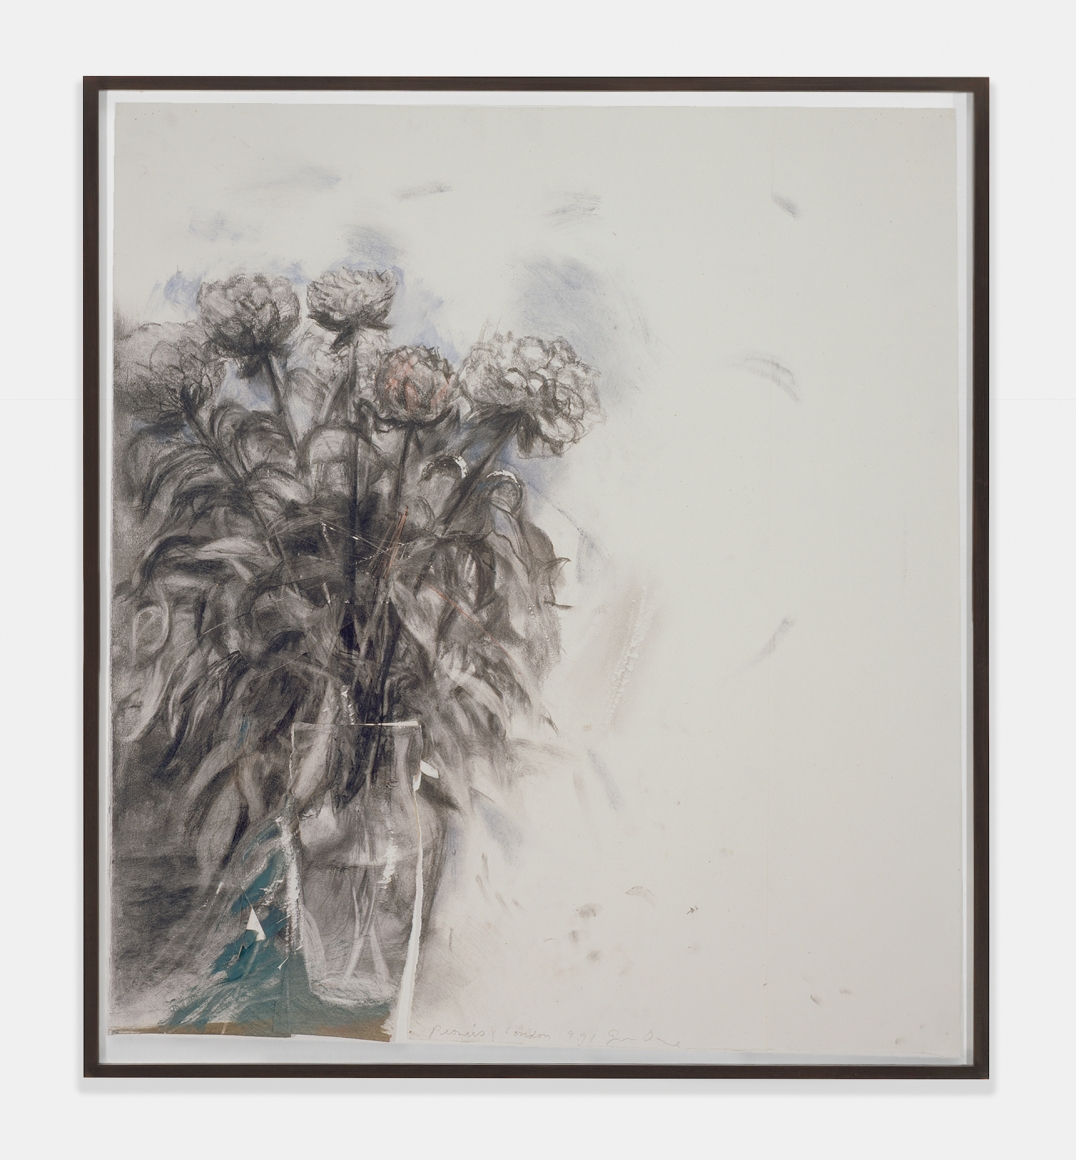 Peonies, Summer 1991, 1991, Charcoal, pencil, colored pencil, oil and watercolor on paper